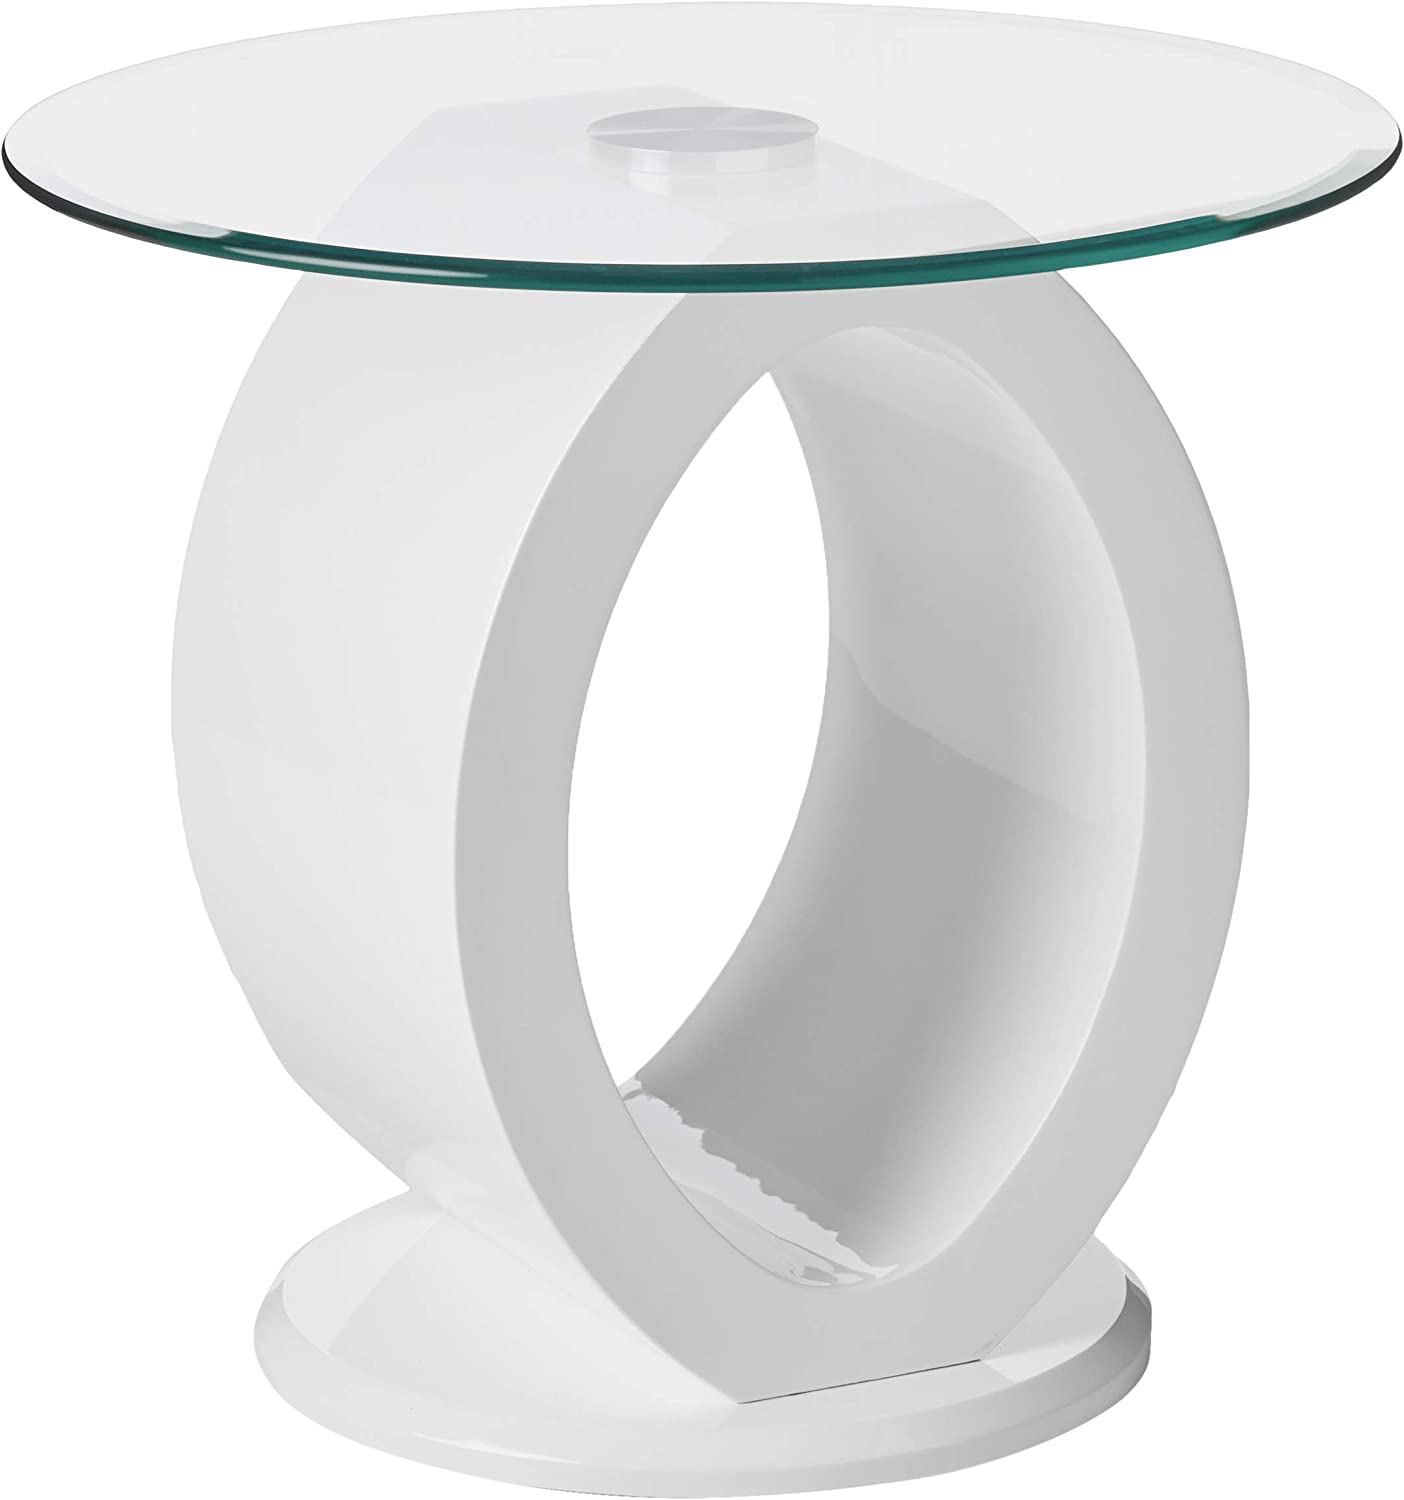 Furniture of America Modine Contemporary Glass Top End Table, White